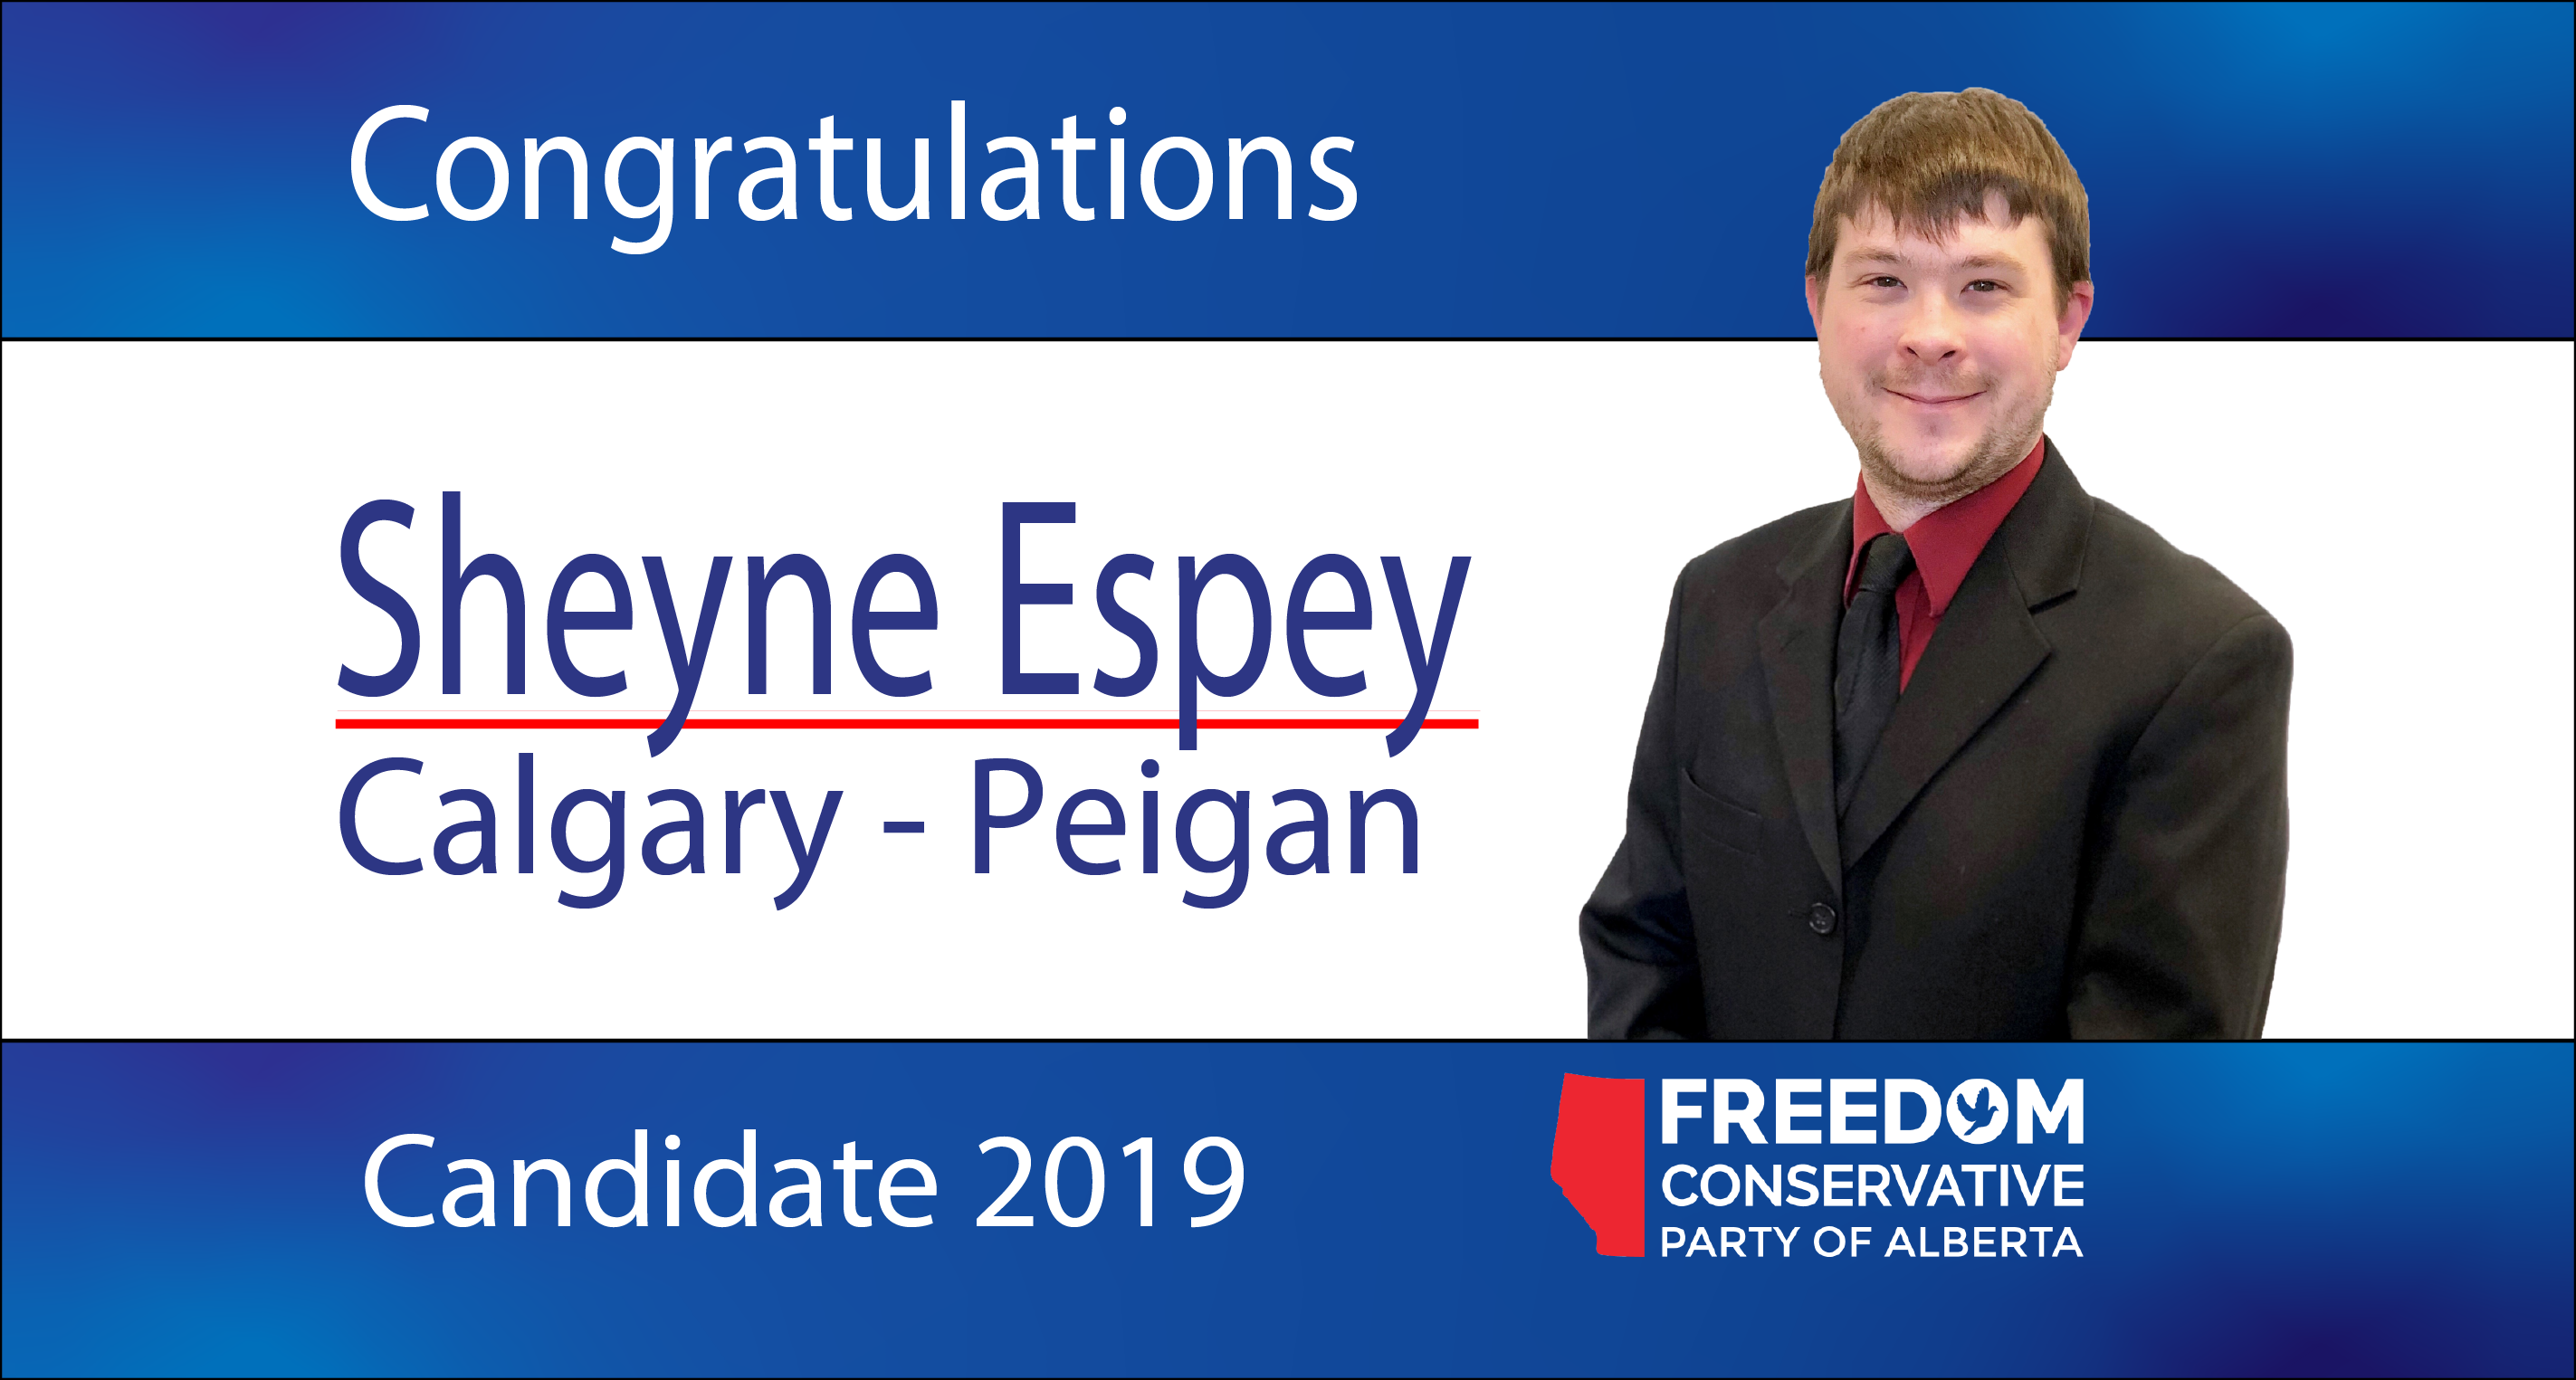 RELEASE: Sheyne Espey Nominated as FCP Candidate forCalgary-Peigan